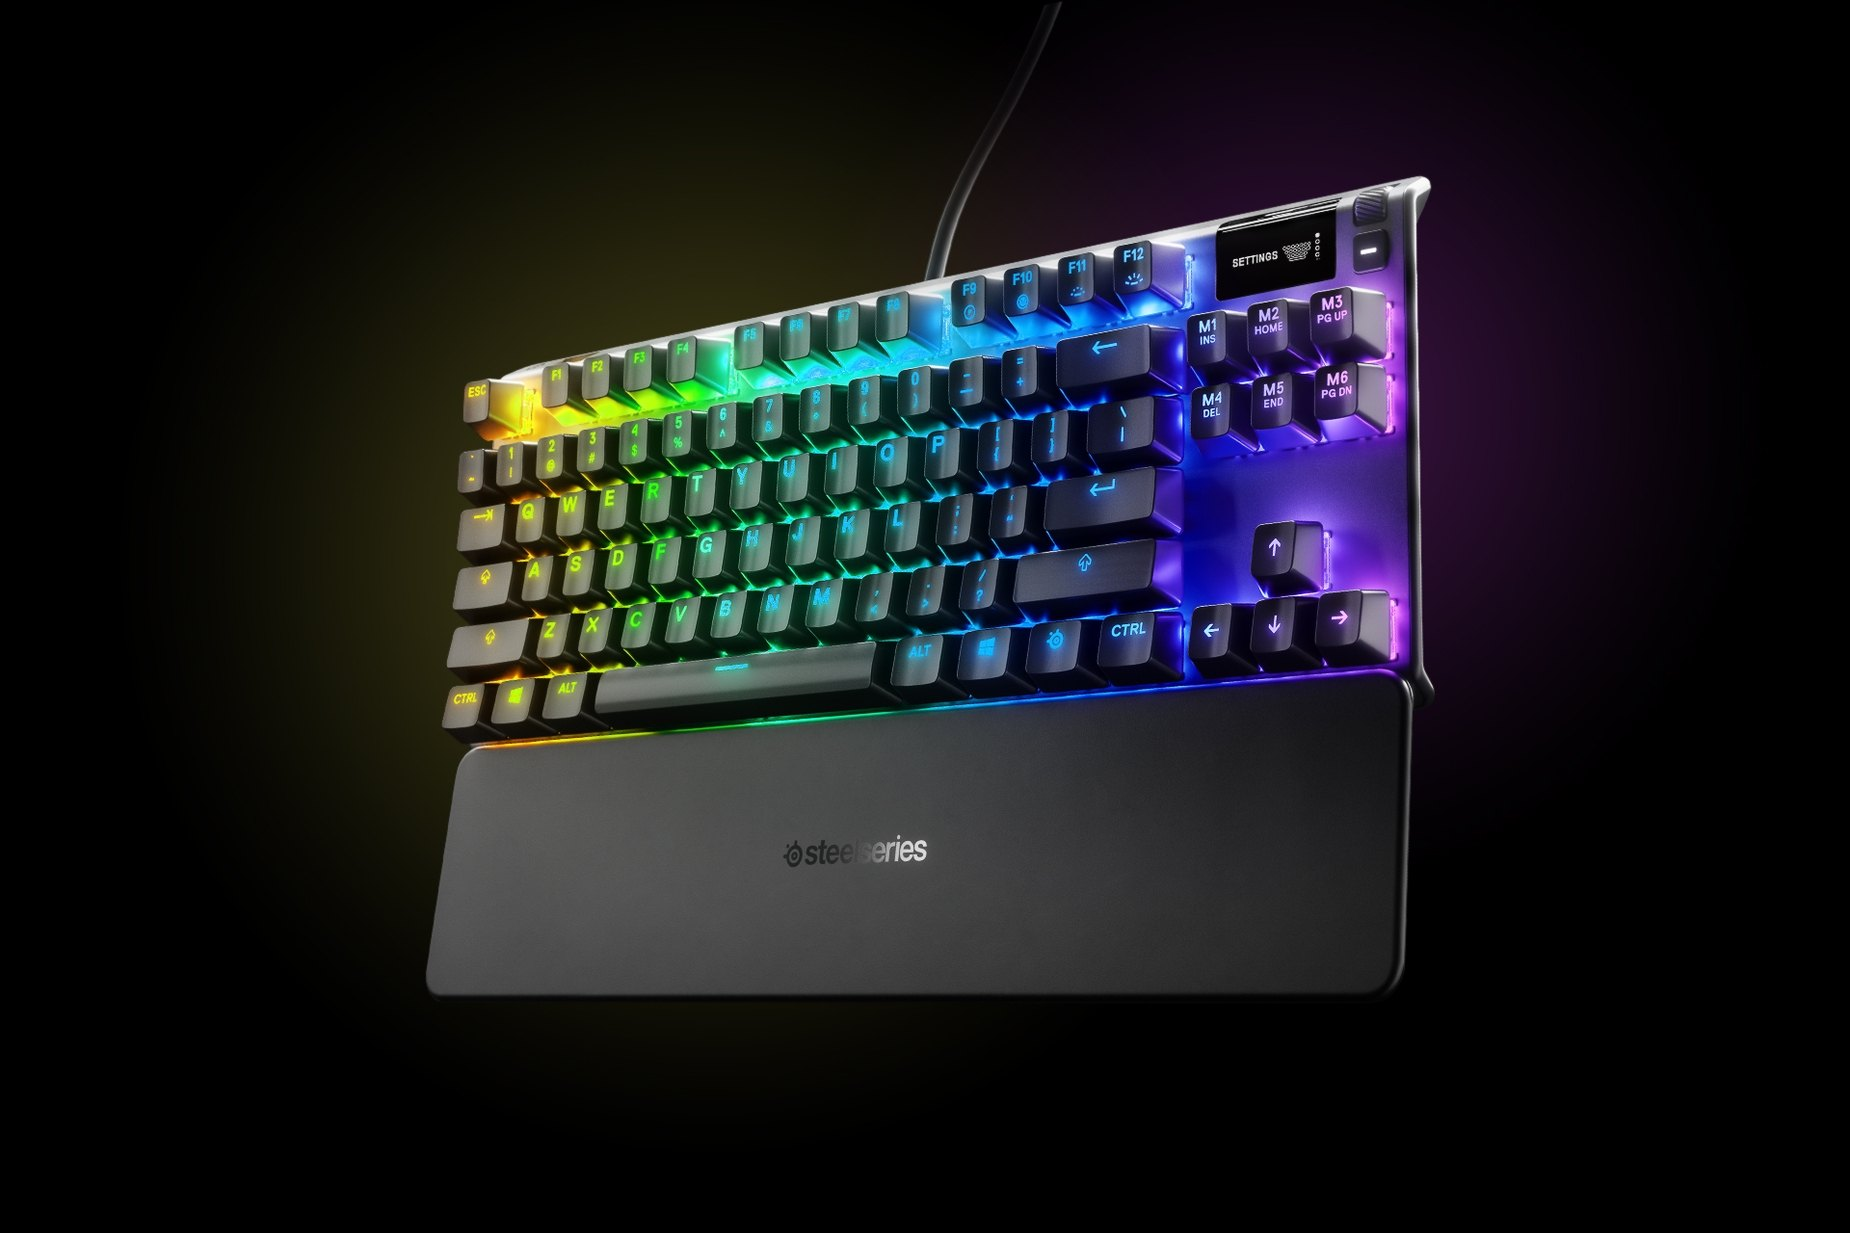 US English - Apex 7 TKL (Blue Switch) gaming keyboard with the illumination lit up on dark background, also shows the OLED screen and controls used to change settings and adjust audio